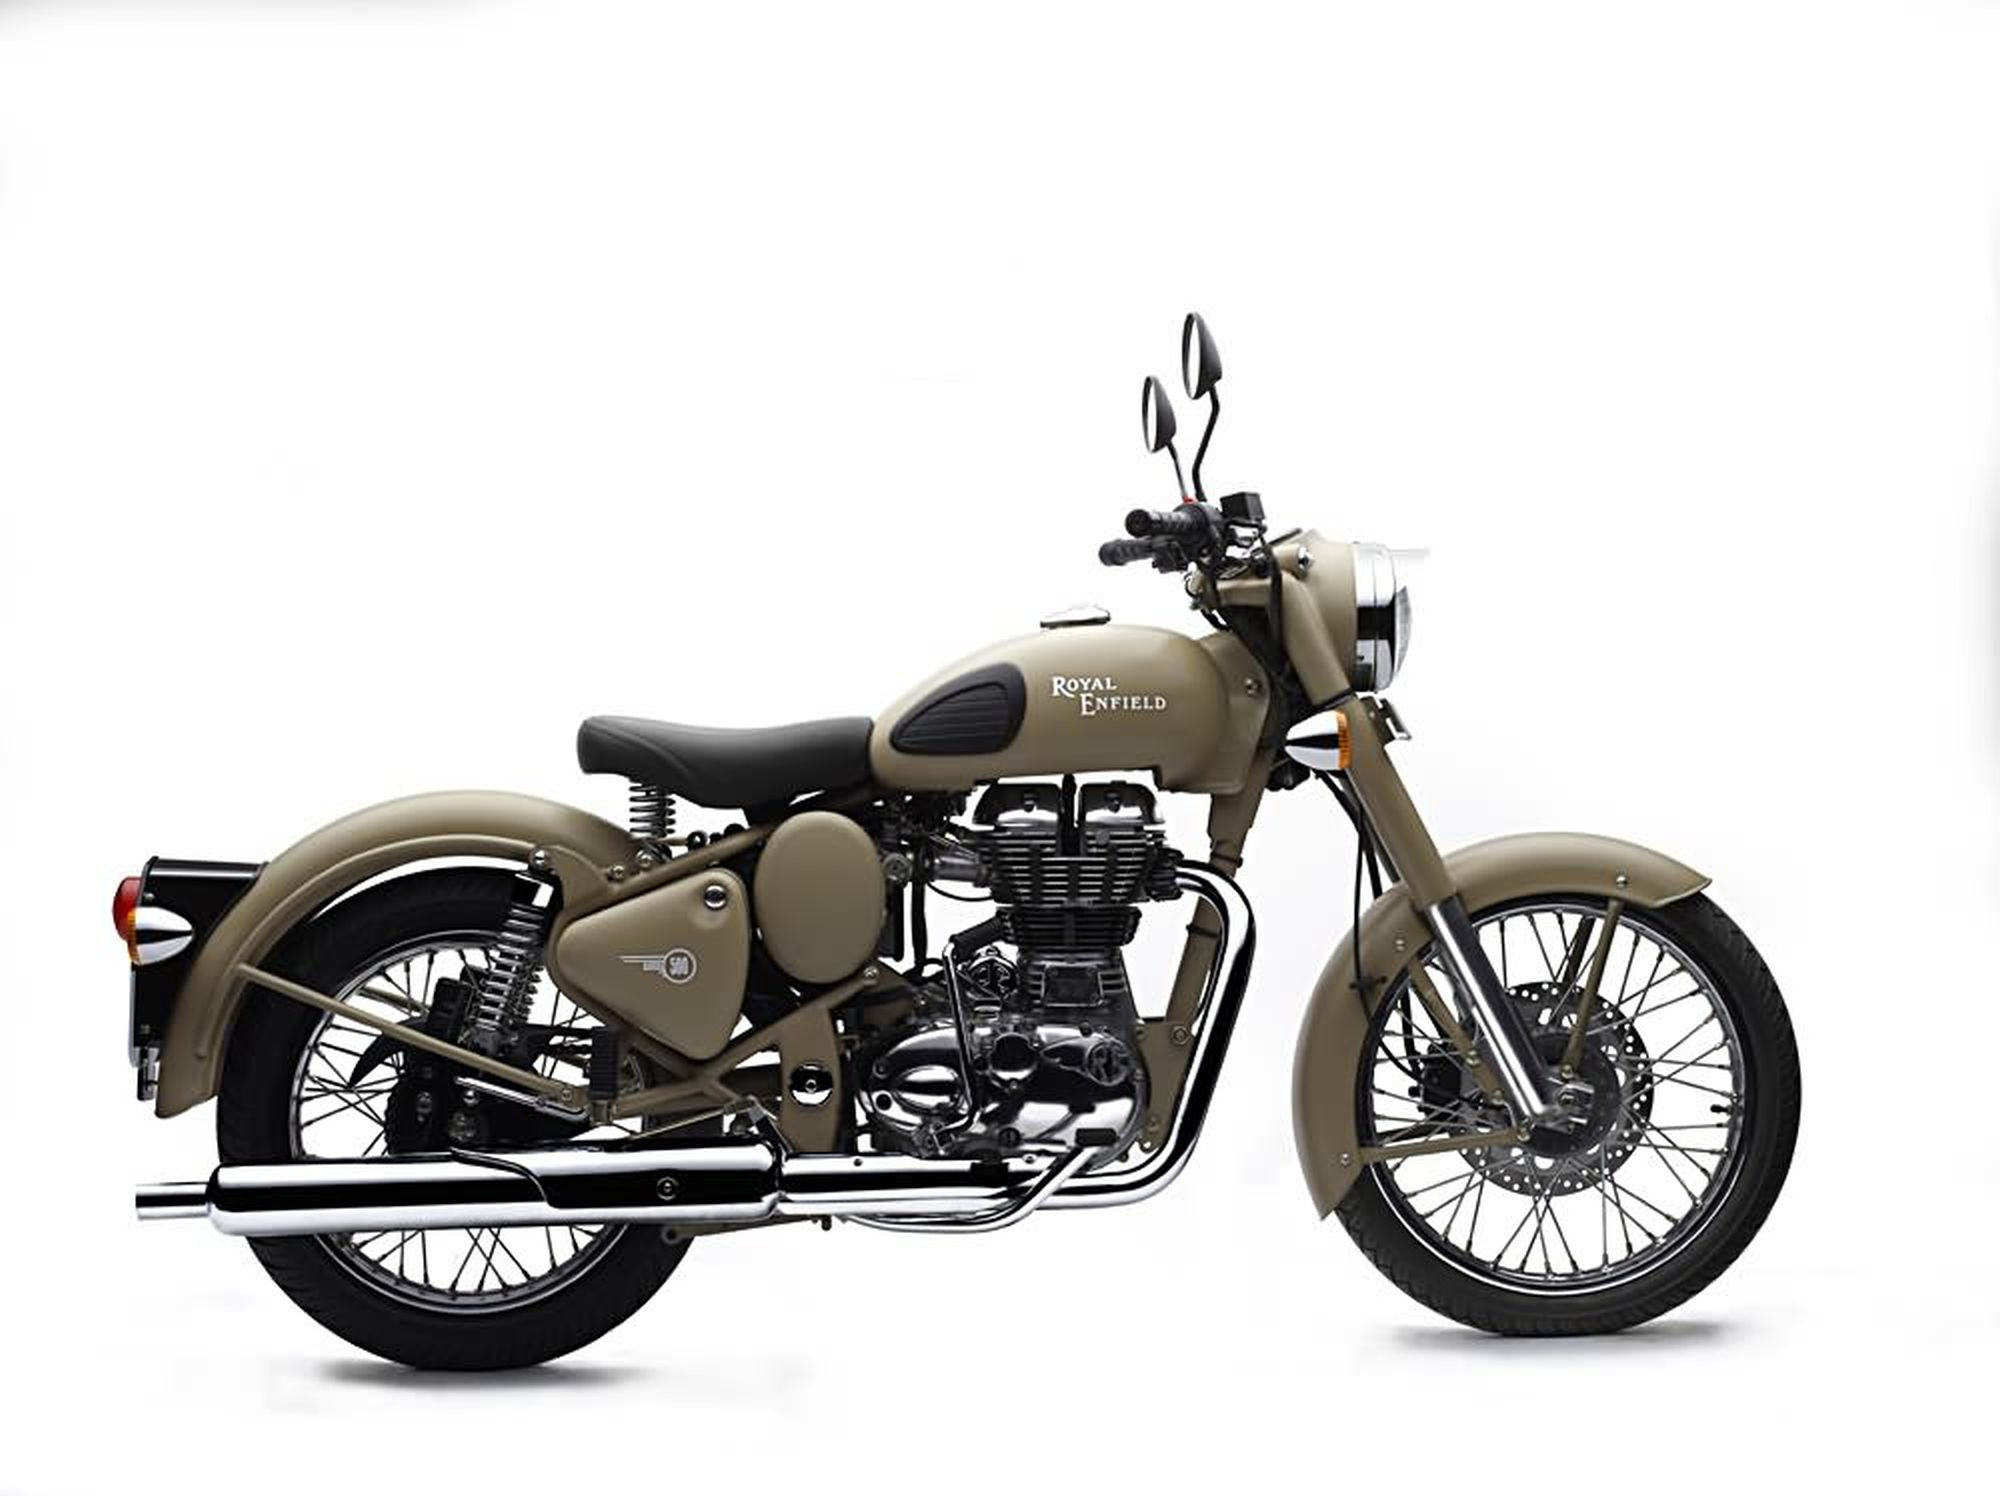 motorrad occasion royal enfield bullet 500 classic efi military kaufen. Black Bedroom Furniture Sets. Home Design Ideas